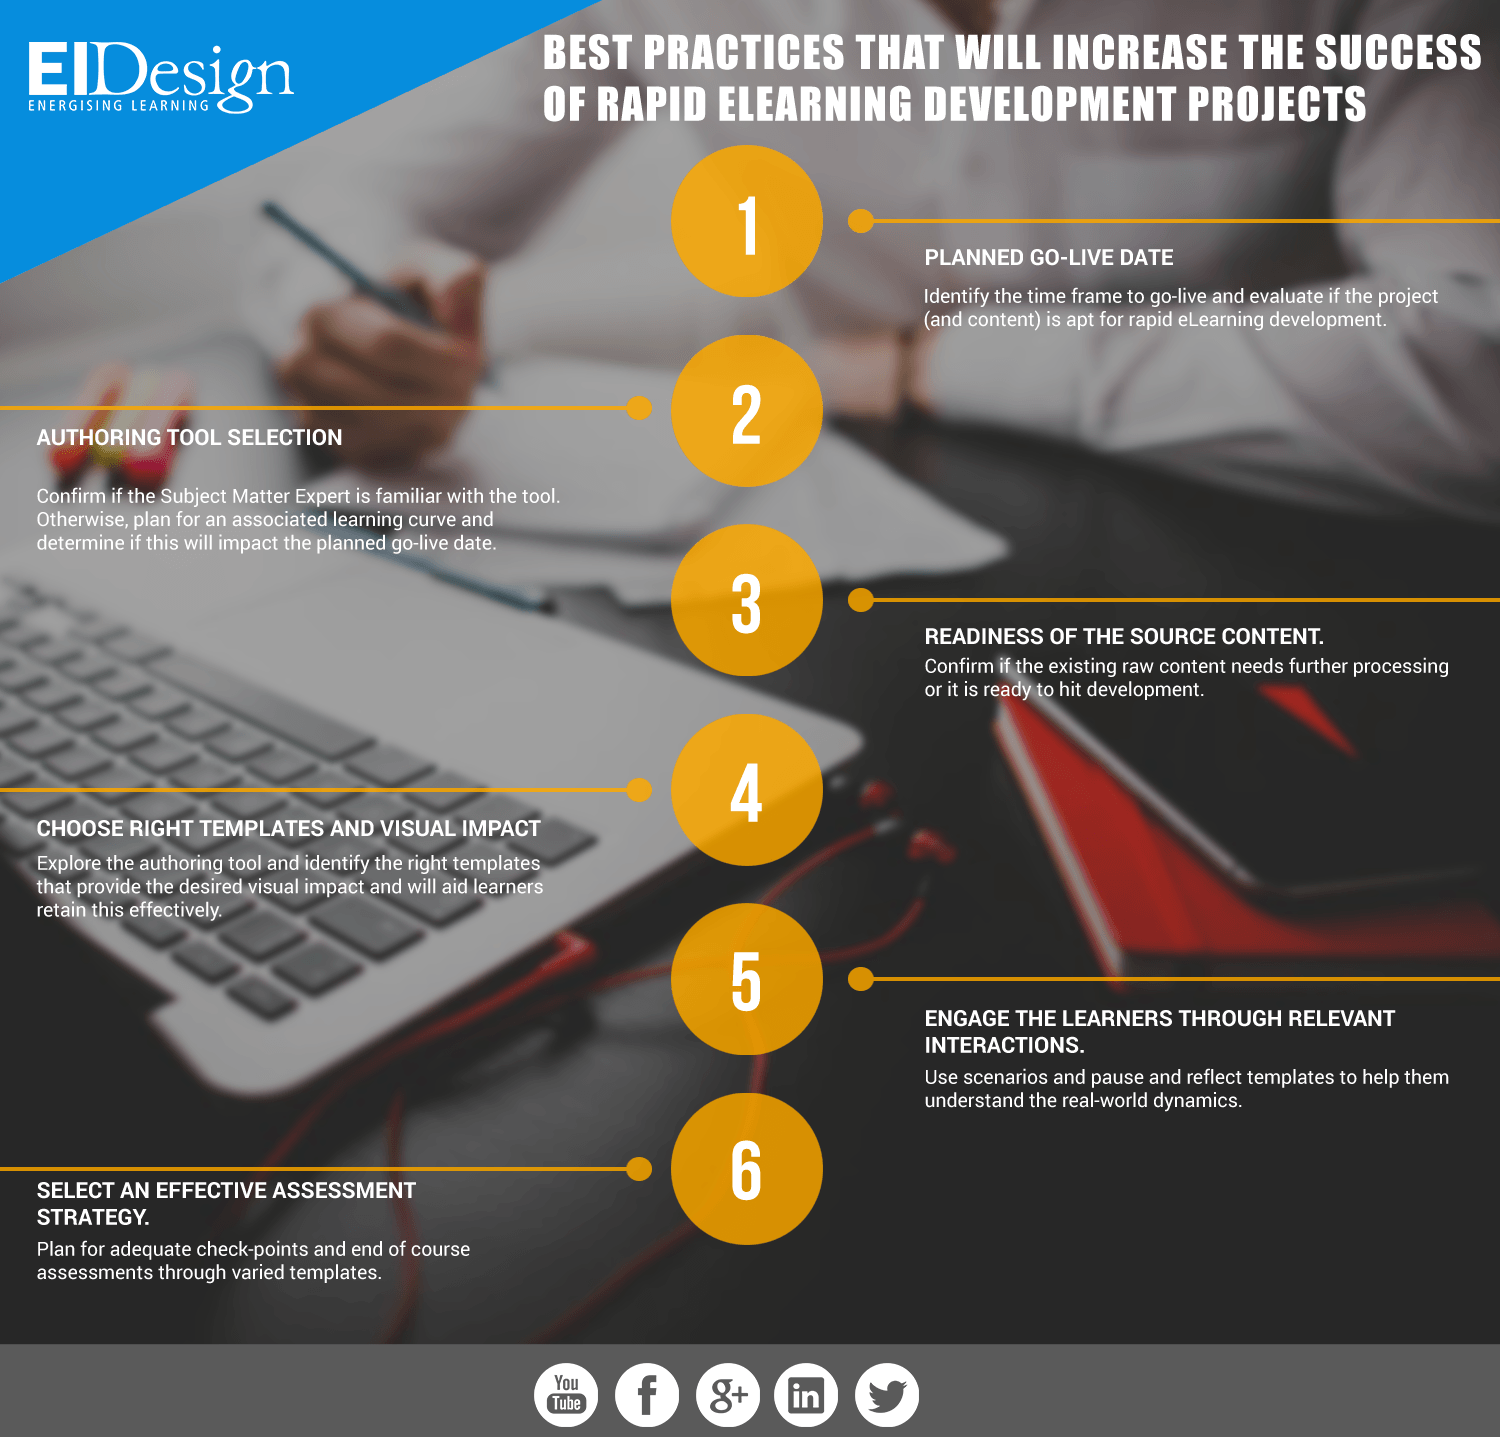 How to Increase the Success of Rapid eLearning Development Projects Infographic